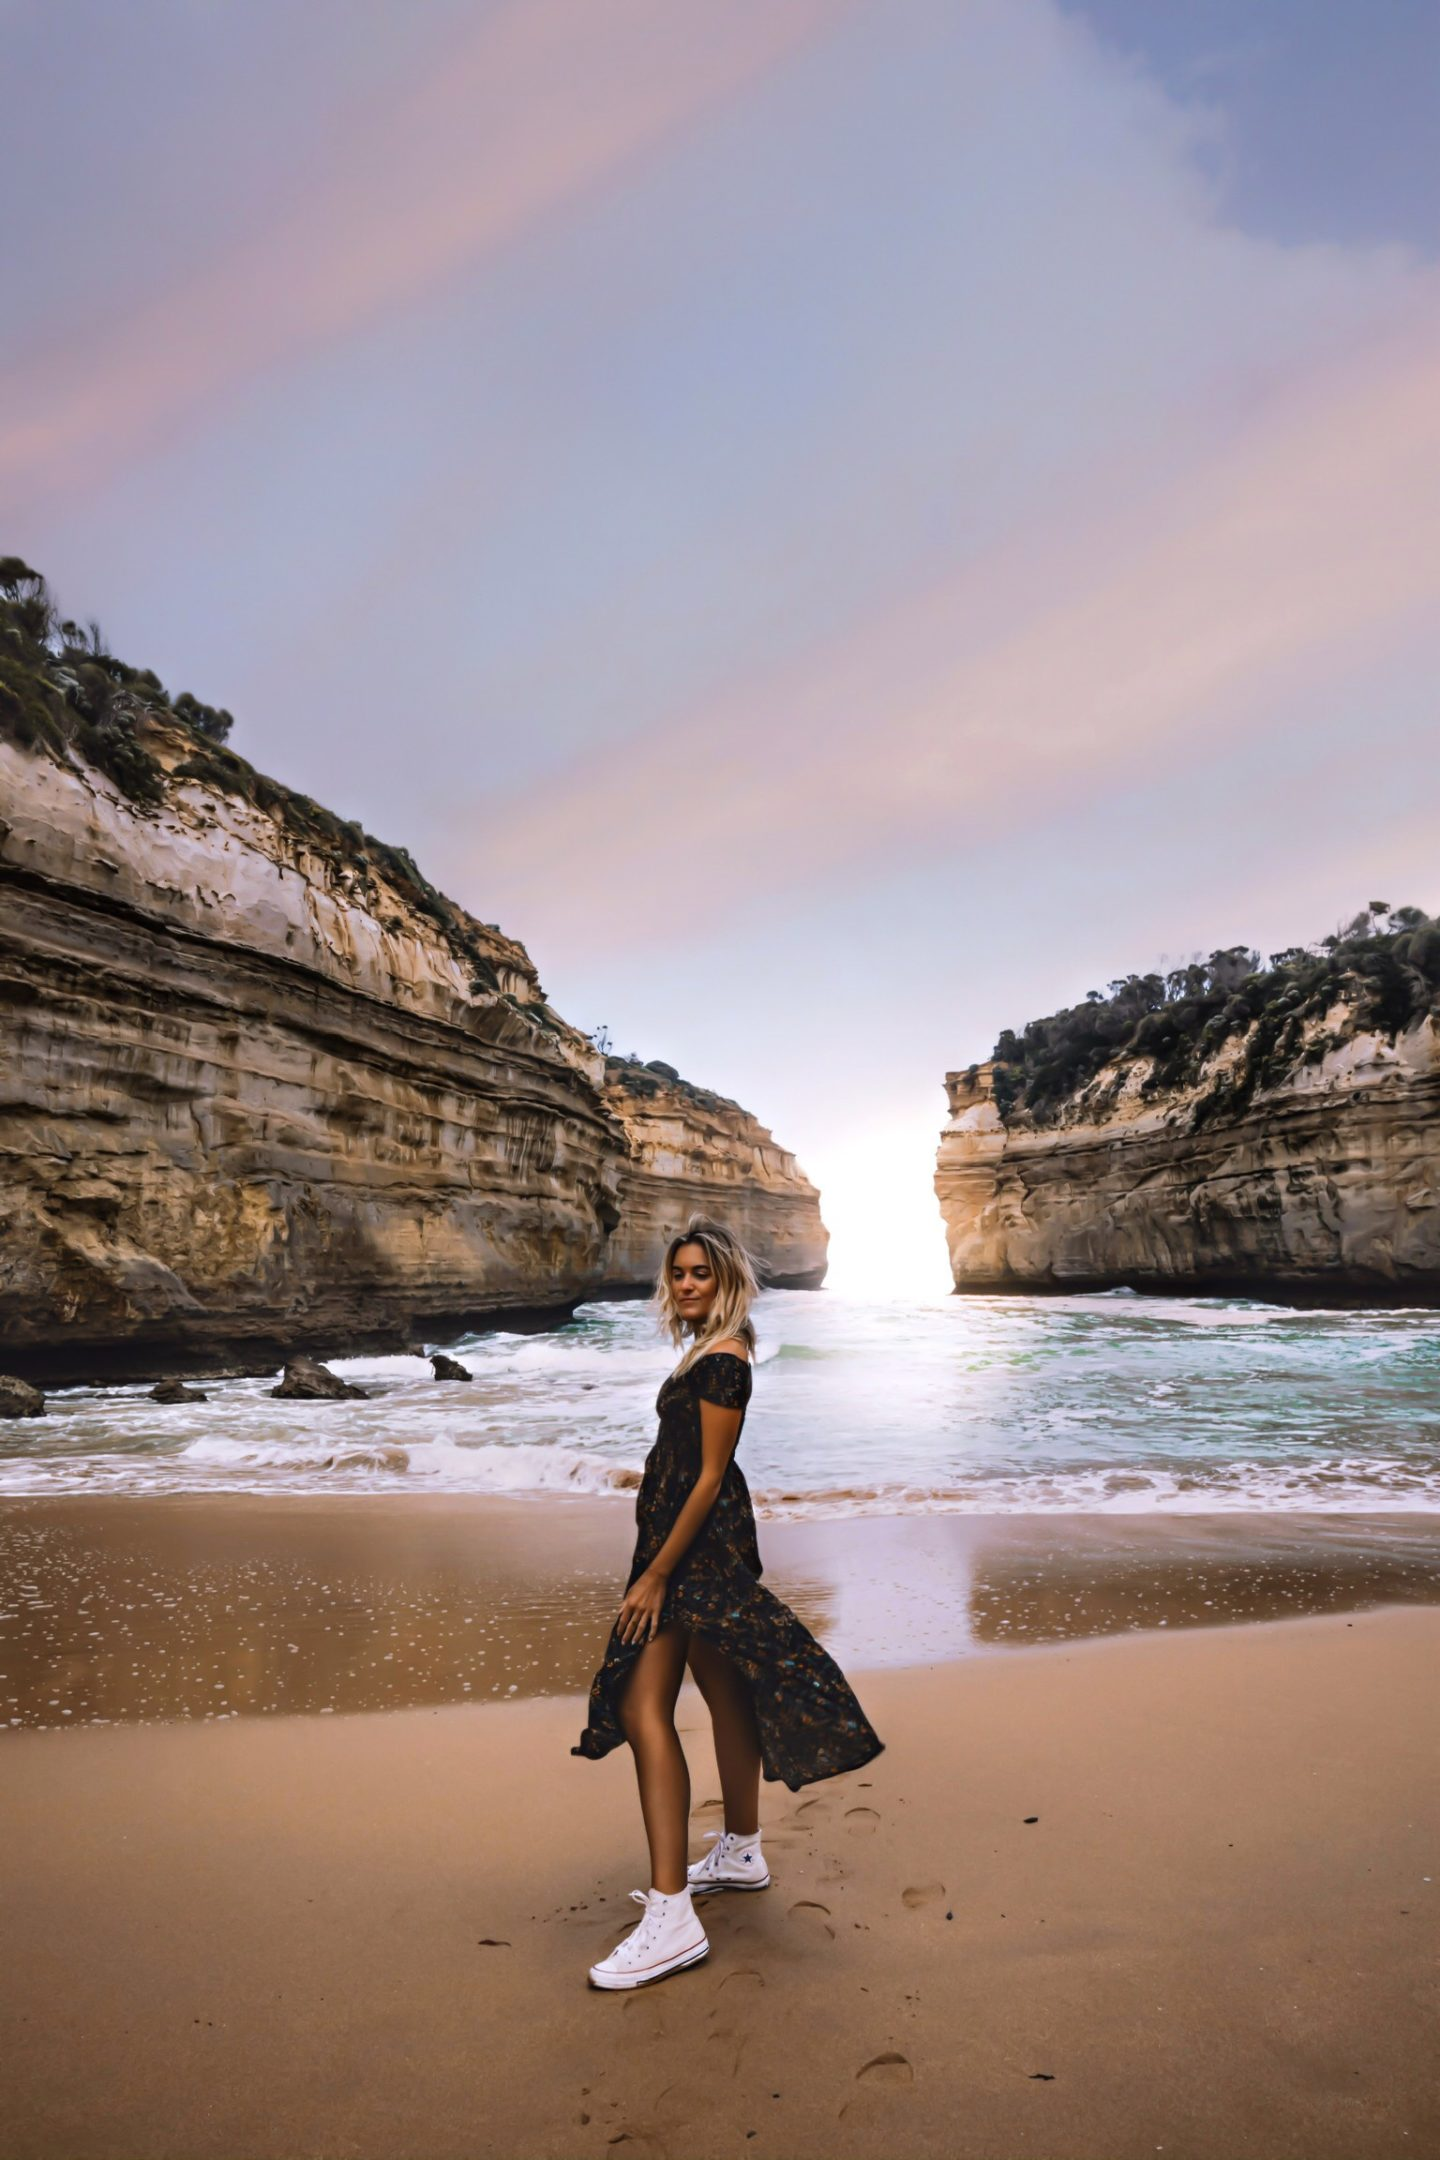 Sunset Great Ocean Road - Blondie Baby blog mode et voyages